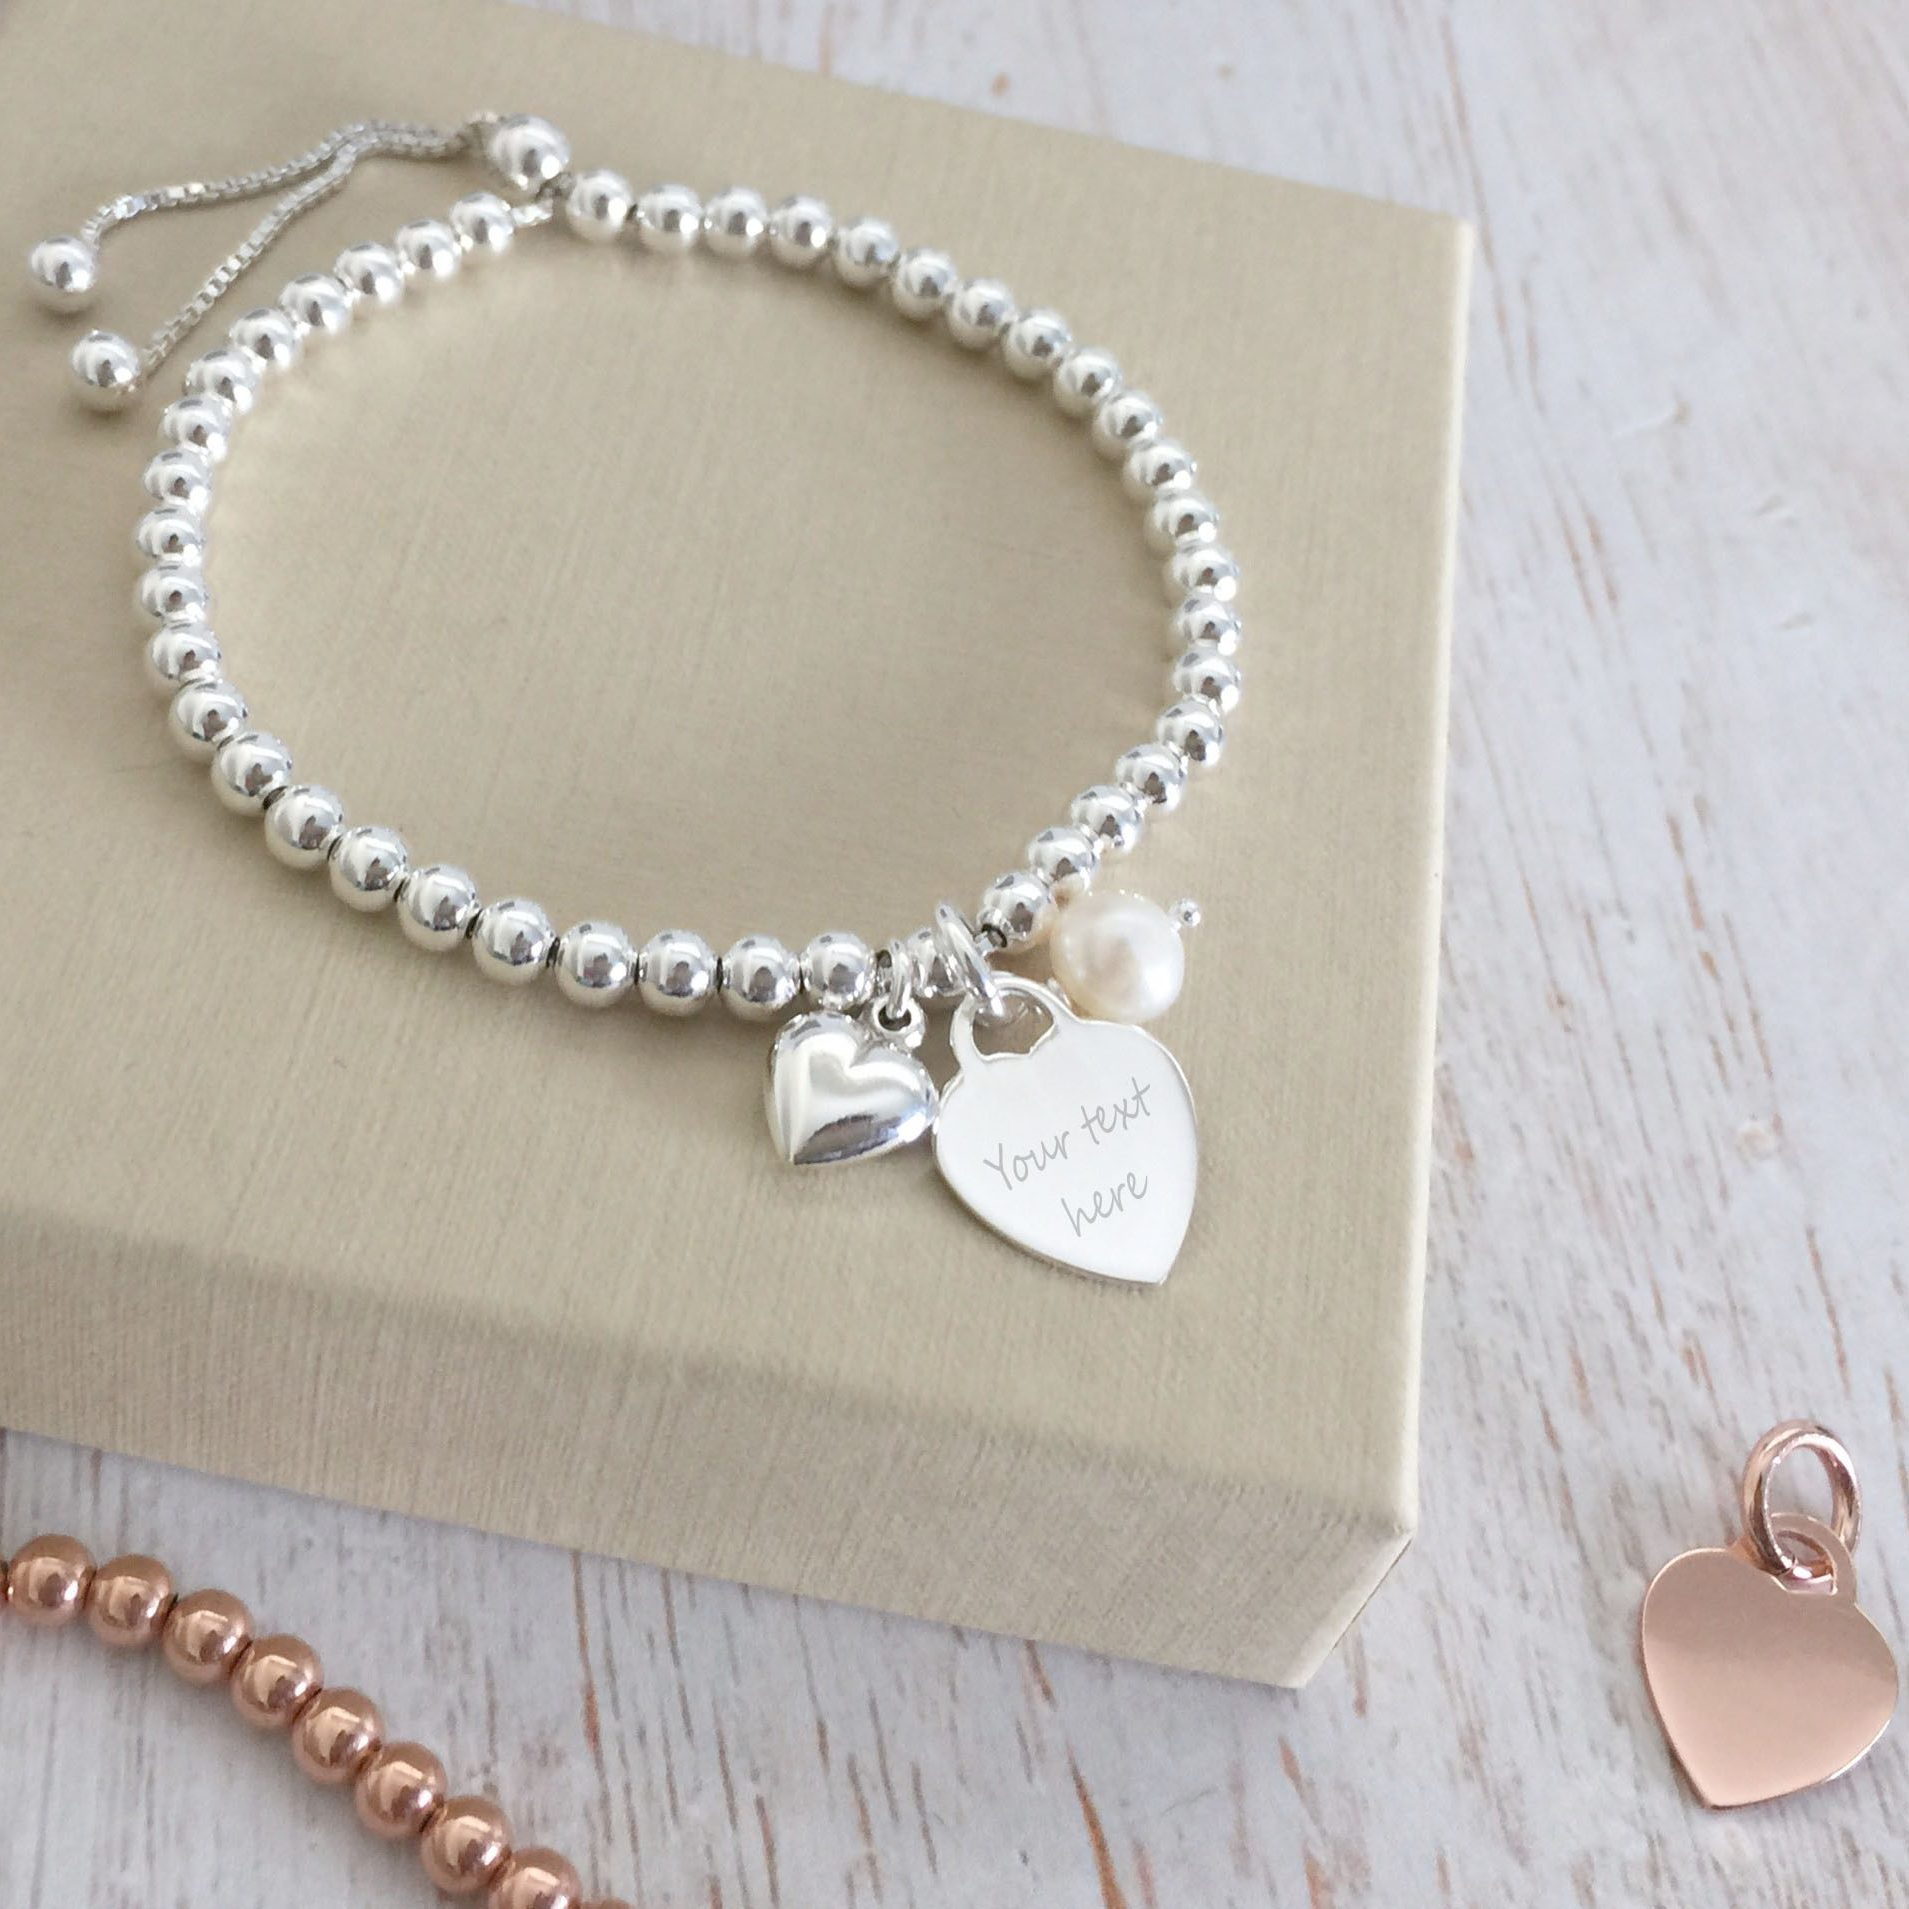 Sterling Silver Bracelet with Engraving Gift for Godmother Delicate 4mm beads.